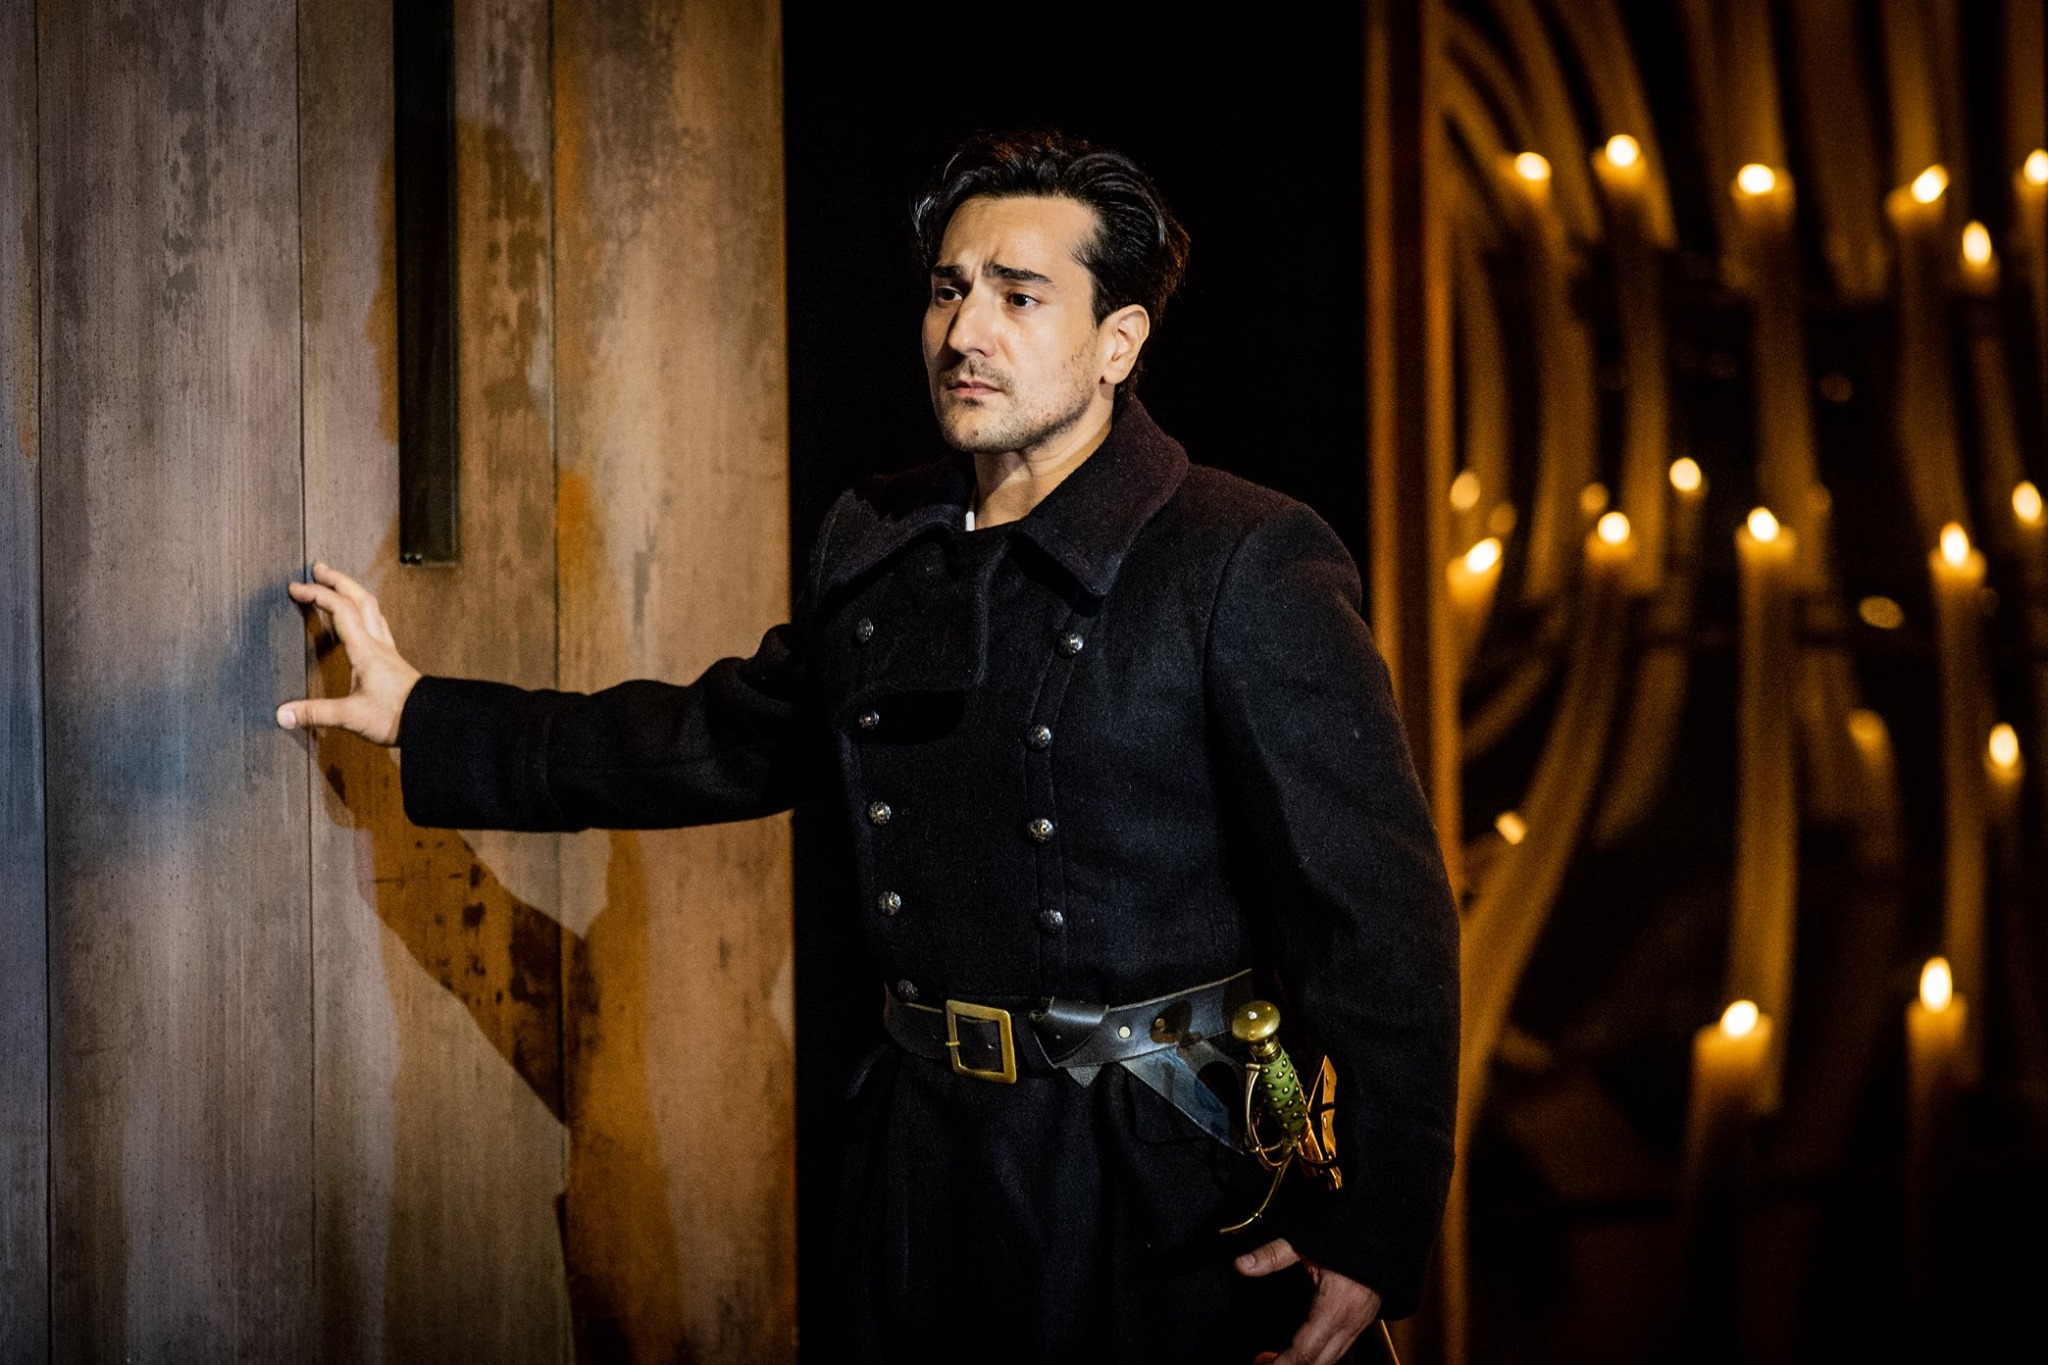 Leonardo Capalbo as Don Carlo at Grange Park Opera. Photo by Robert Workman.